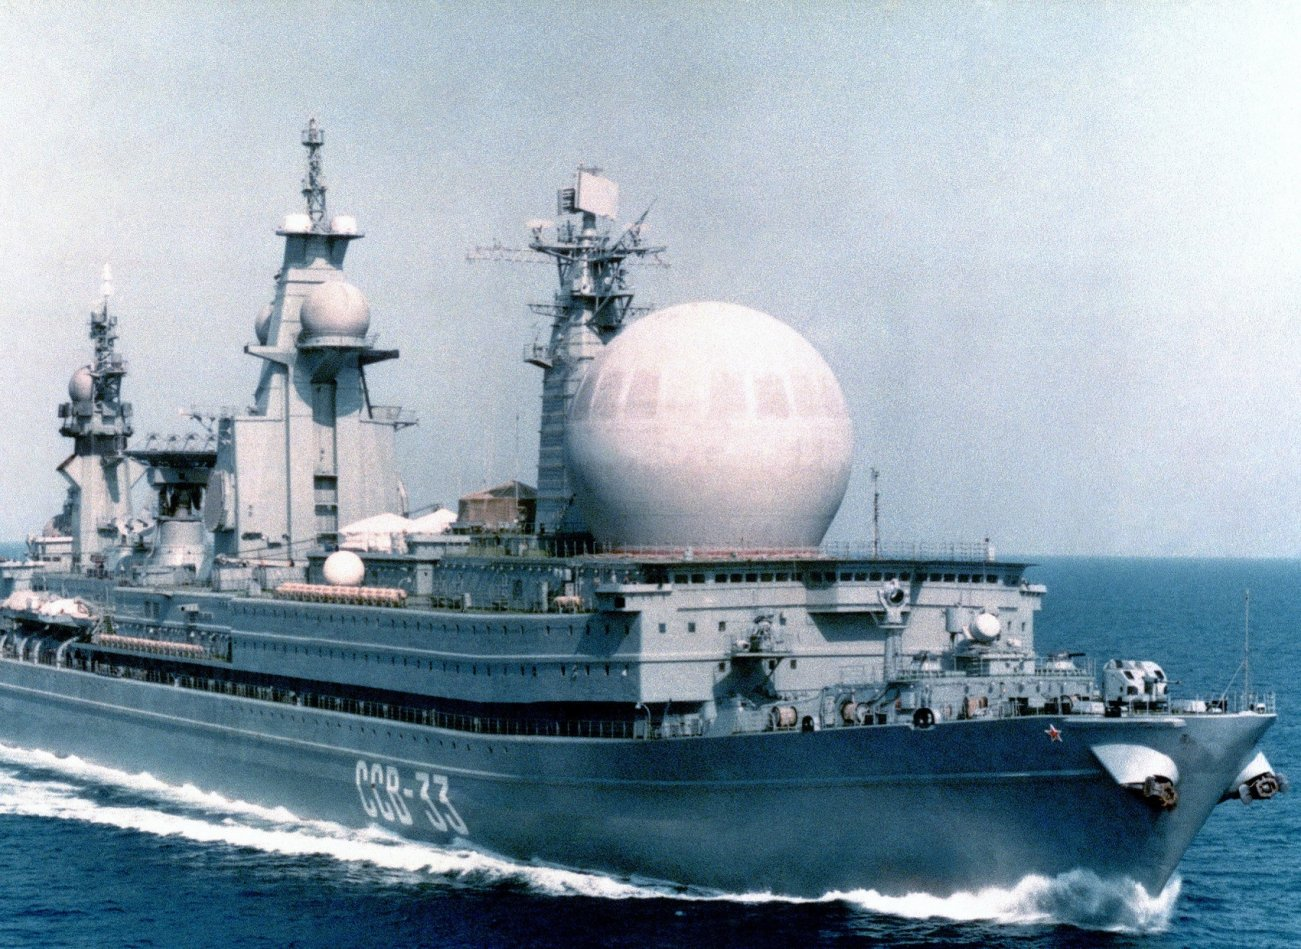 Russia's Giant Nuclear Spy Ship Was a Floating Disaster